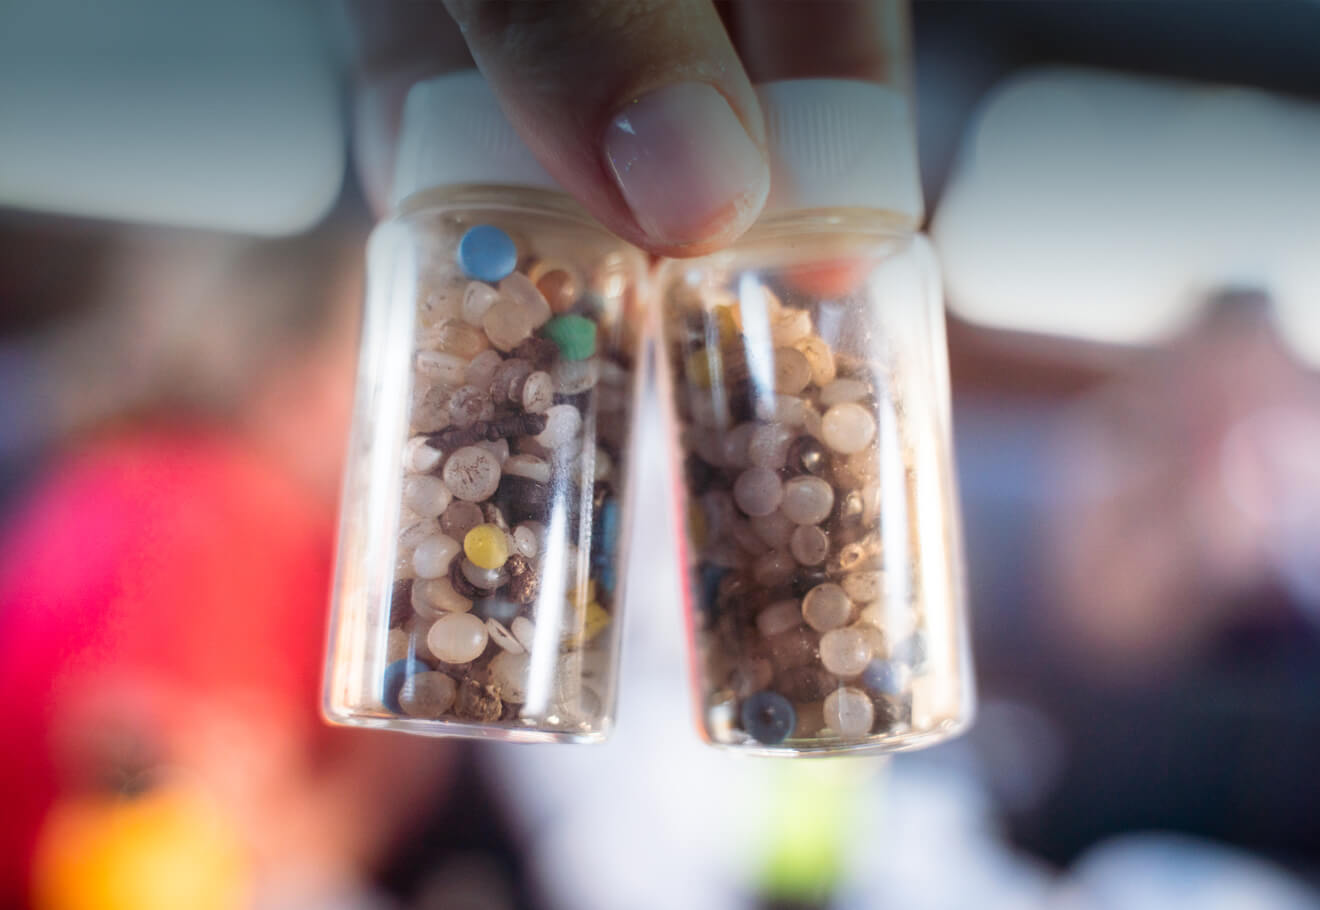 Sample jars containing plastic nurdles